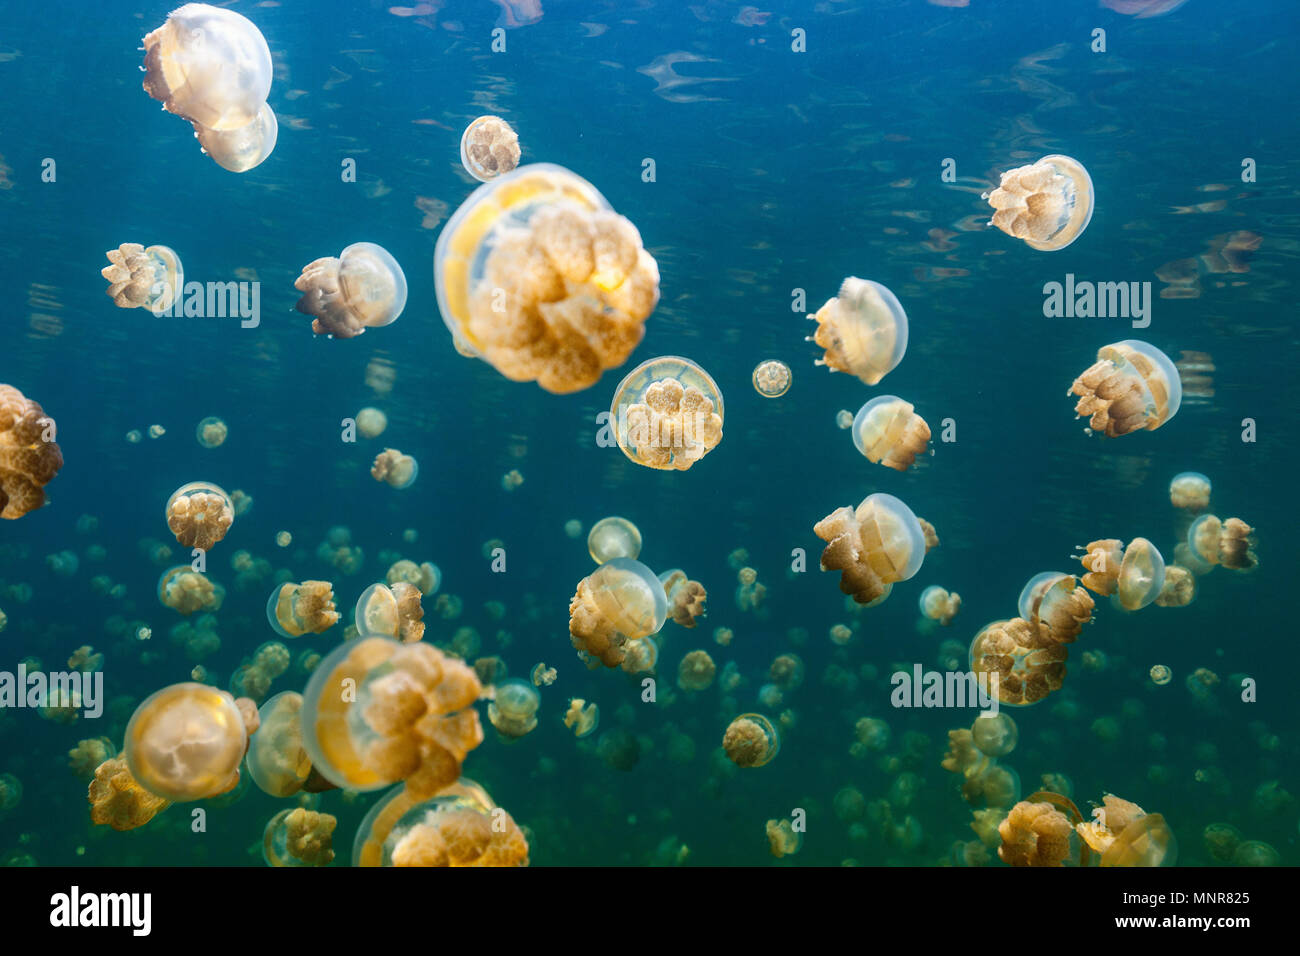 Underwater photo of endemic golden jellyfish in lake at Palau. Snorkeling in Jellyfish Lake is a popular activity for tourists to Palau. - Stock Image